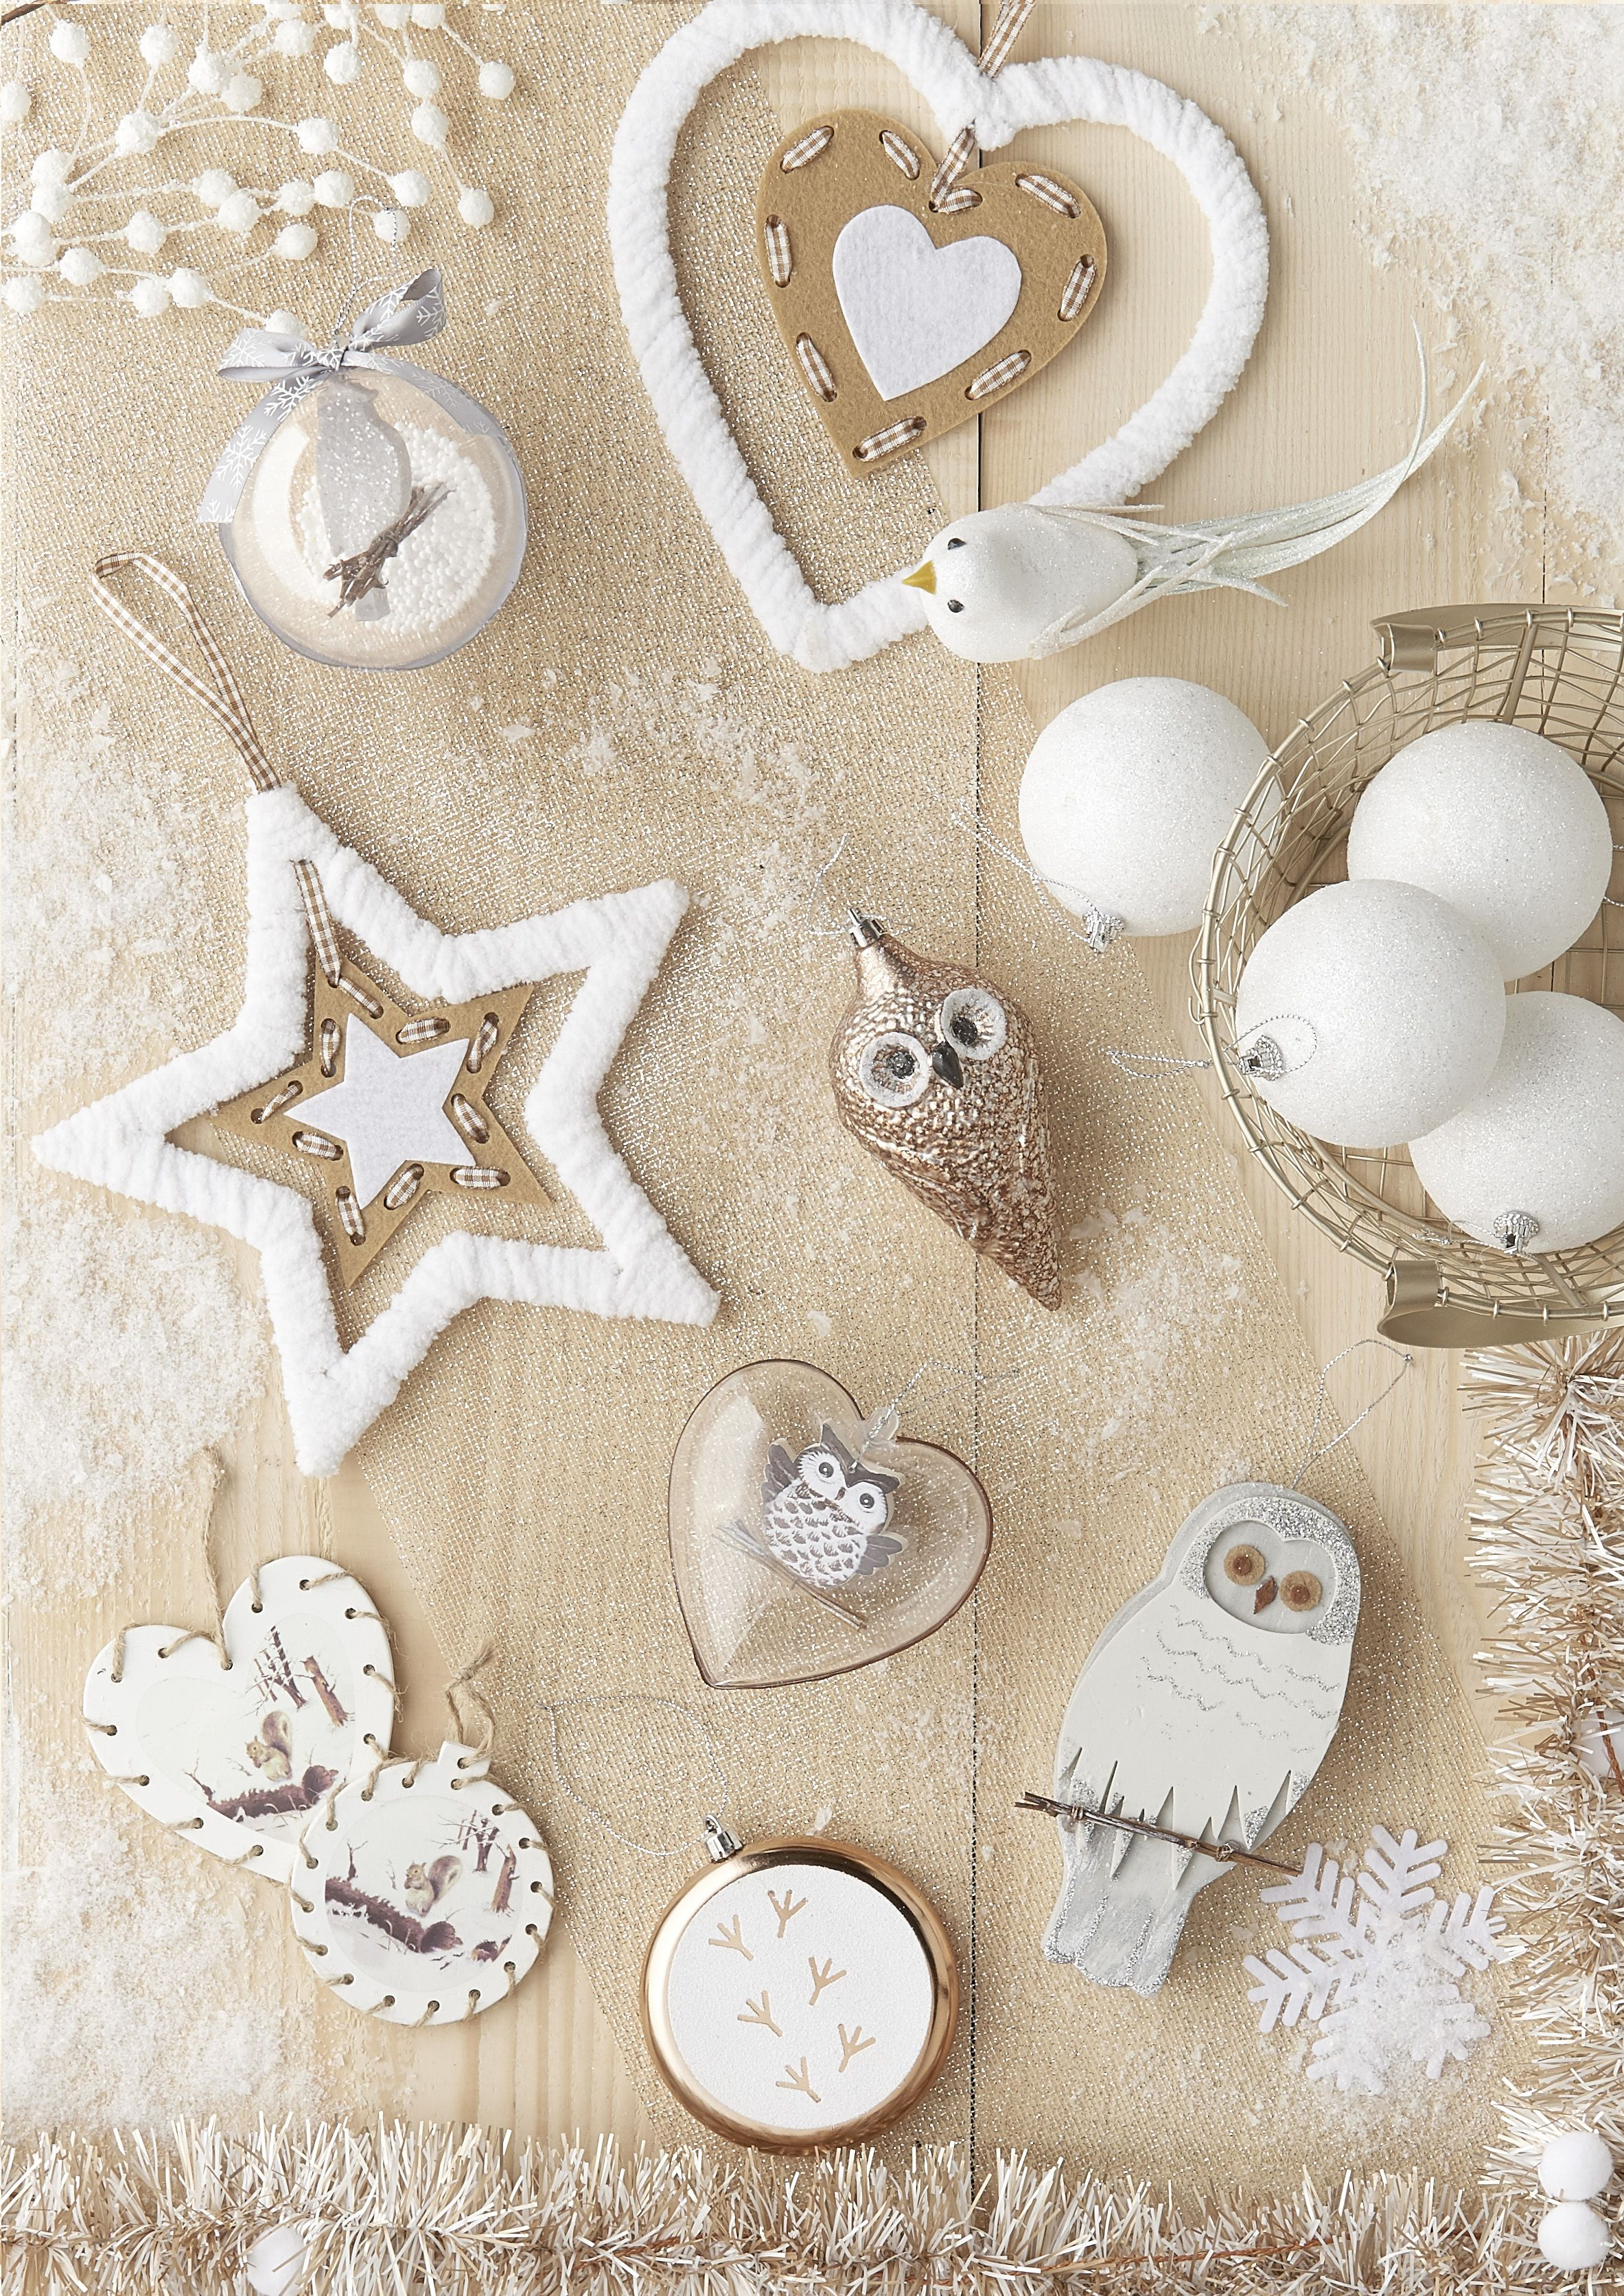 Sujets de no l blanc neige et or carrefour deco no l nature pinterest - Decoration de noel carrefour ...